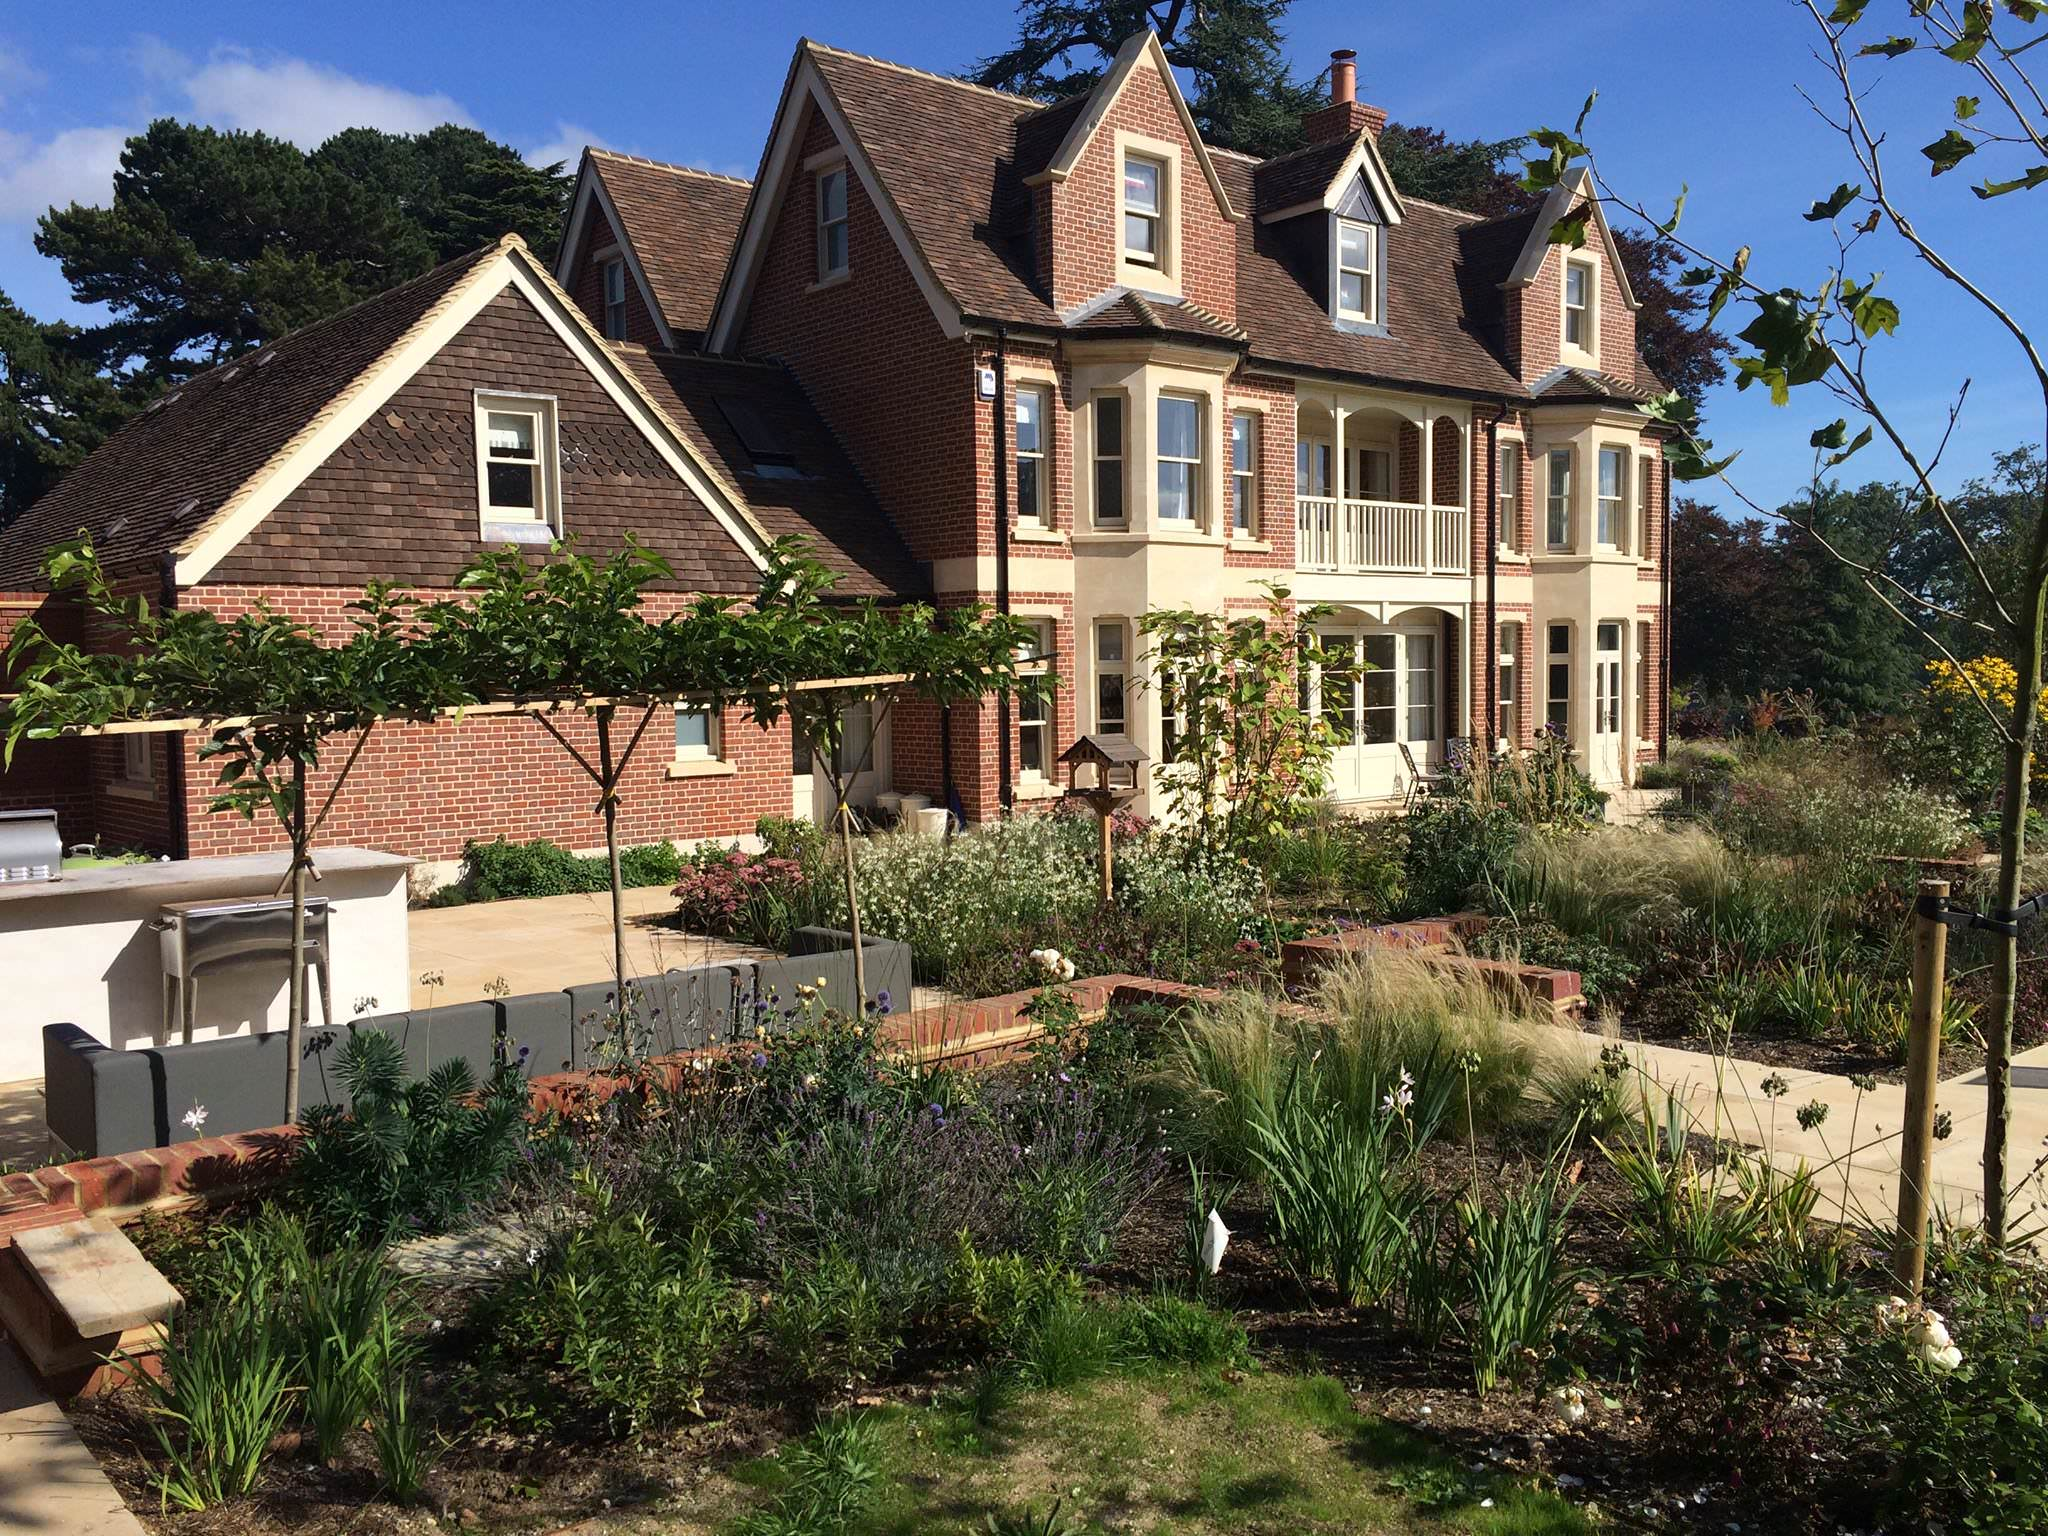 Construction Company Prices, St Albans